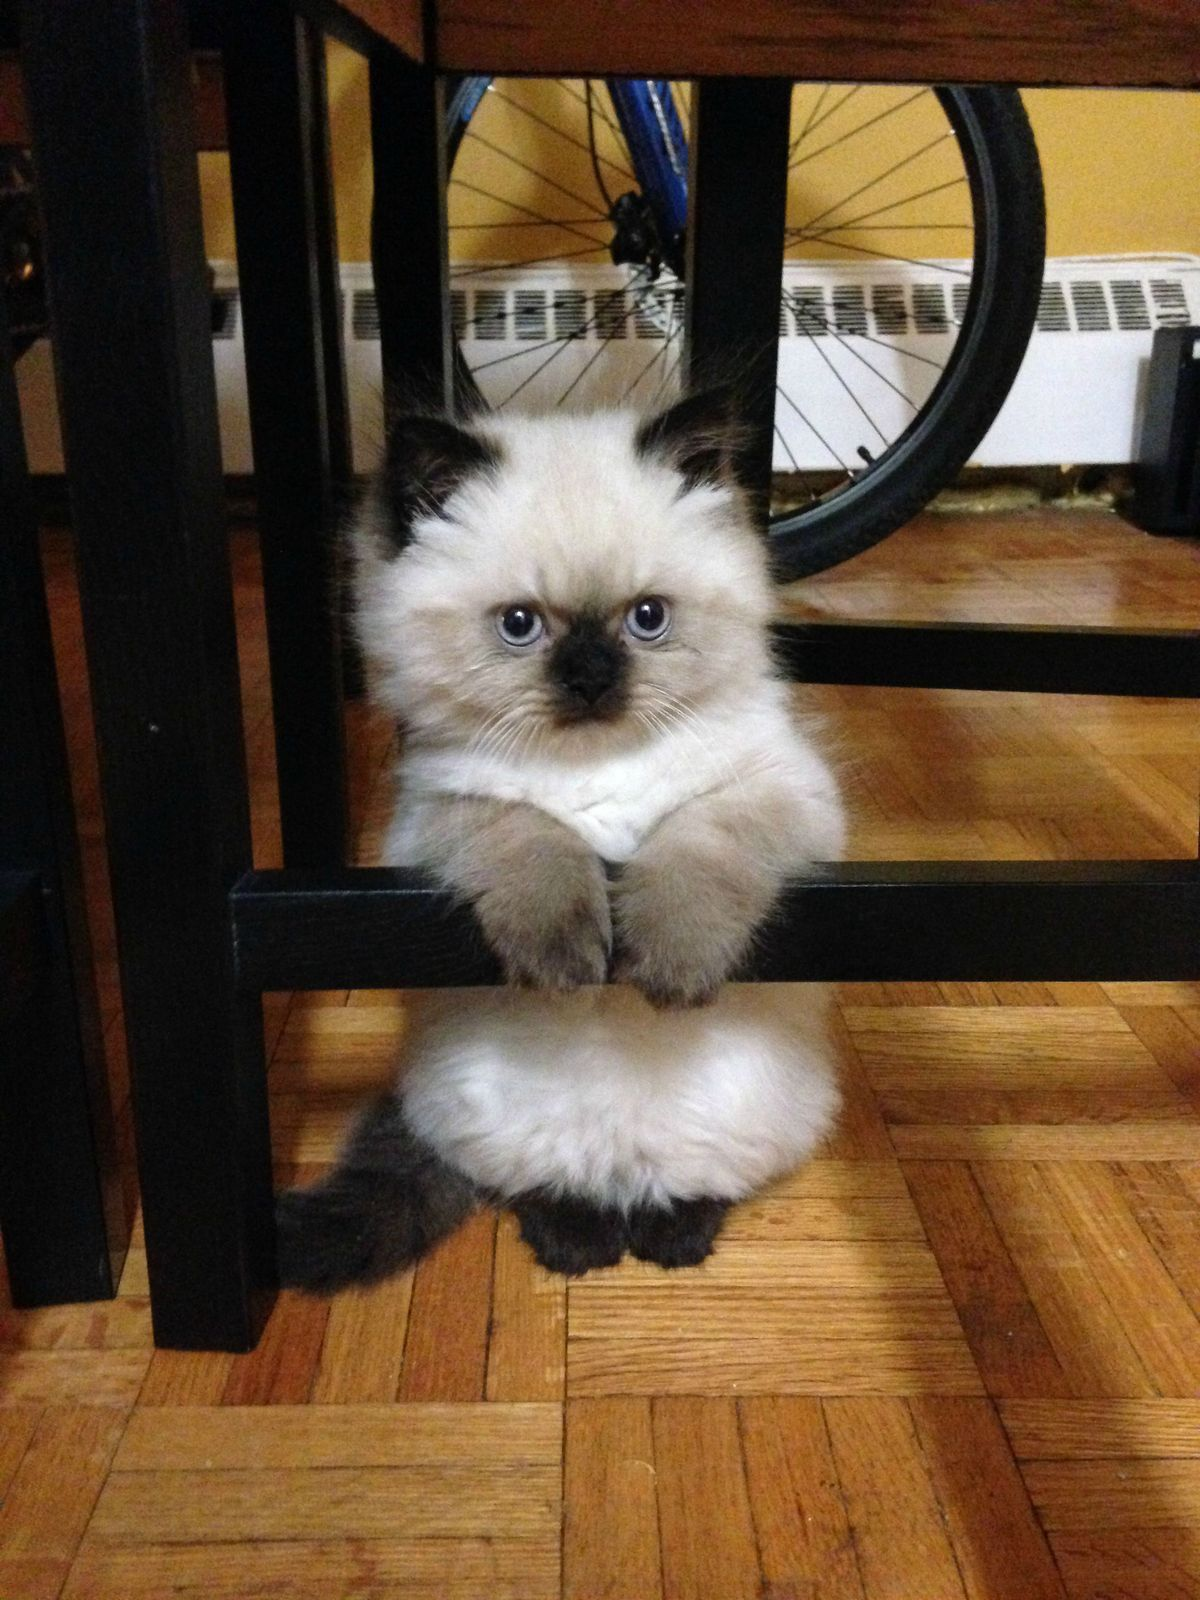 Pin By Christine Lusania On Cats Kittens Cutest Cute Cats And Dogs Cats And Kittens